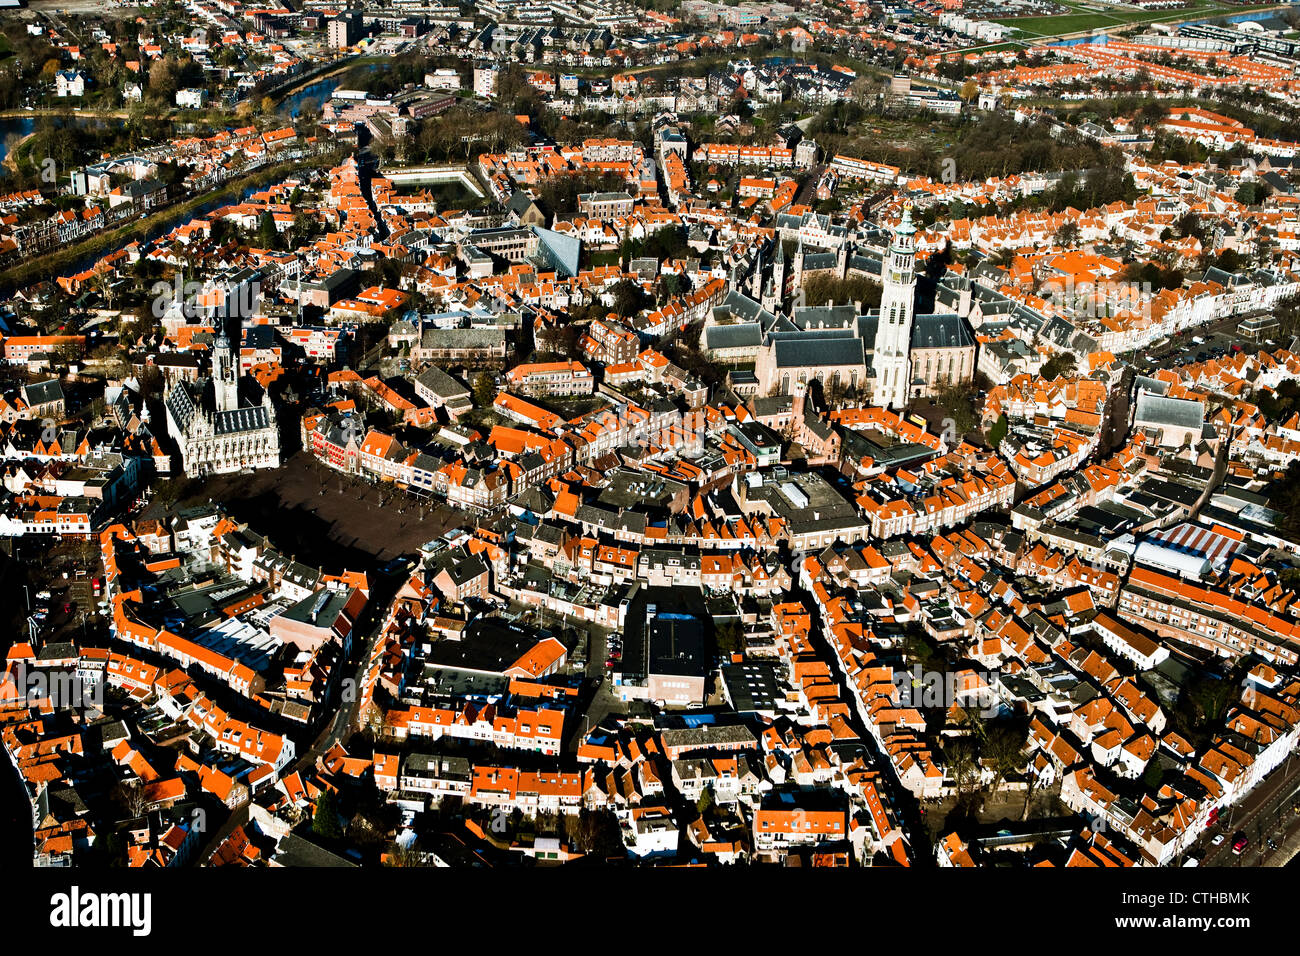 The Netherlands, Middelburg, Aerial of city center. - Stock Image